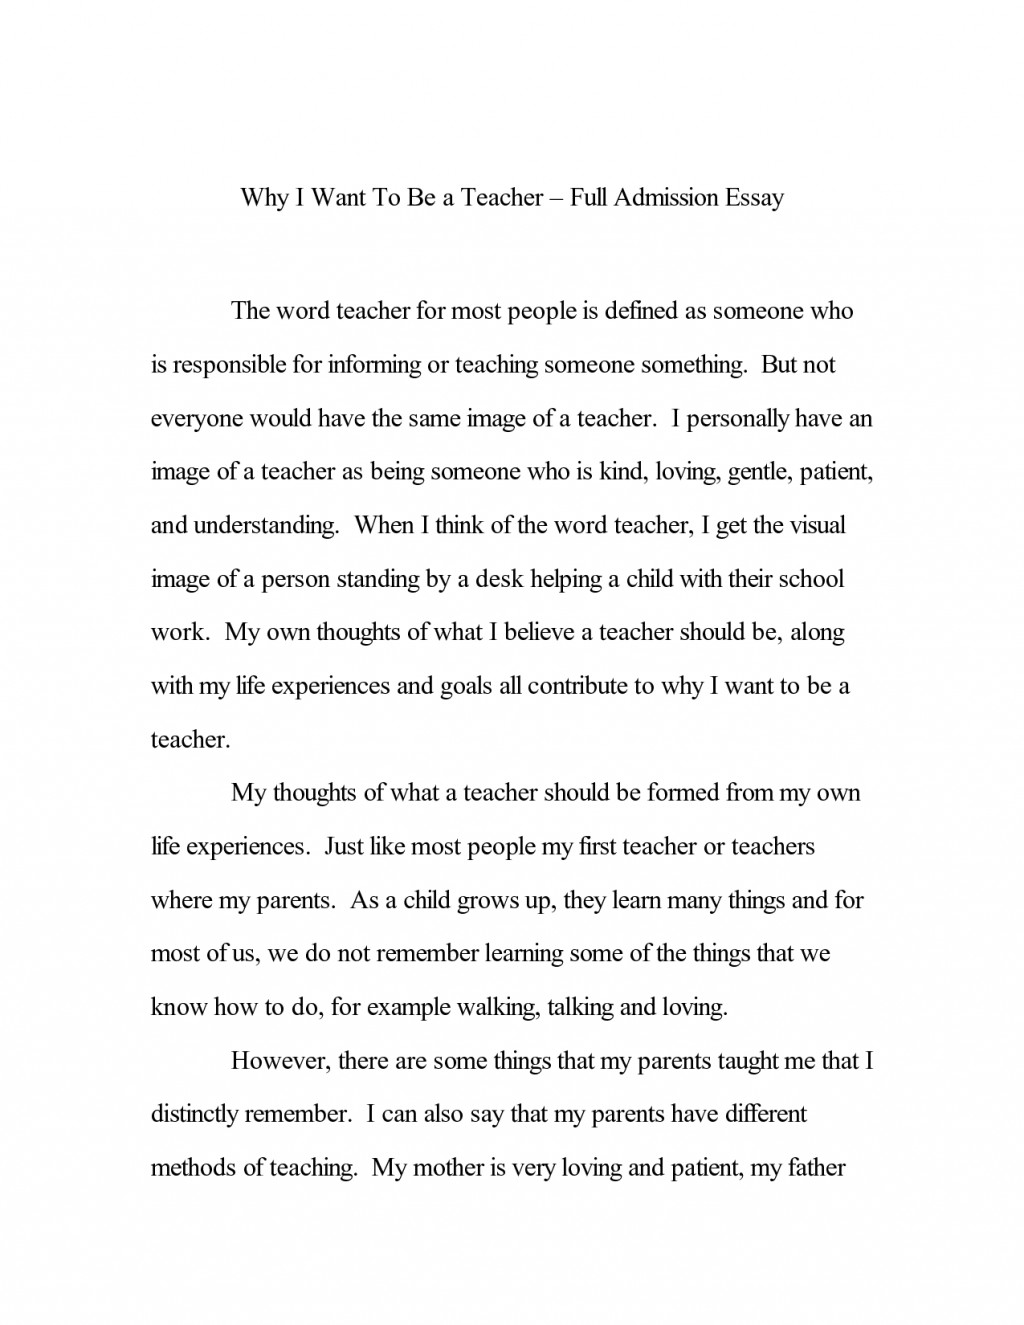 004 Writing College Application Essay Rare A Tips For Great How To Write That Stands Out Example Of Large